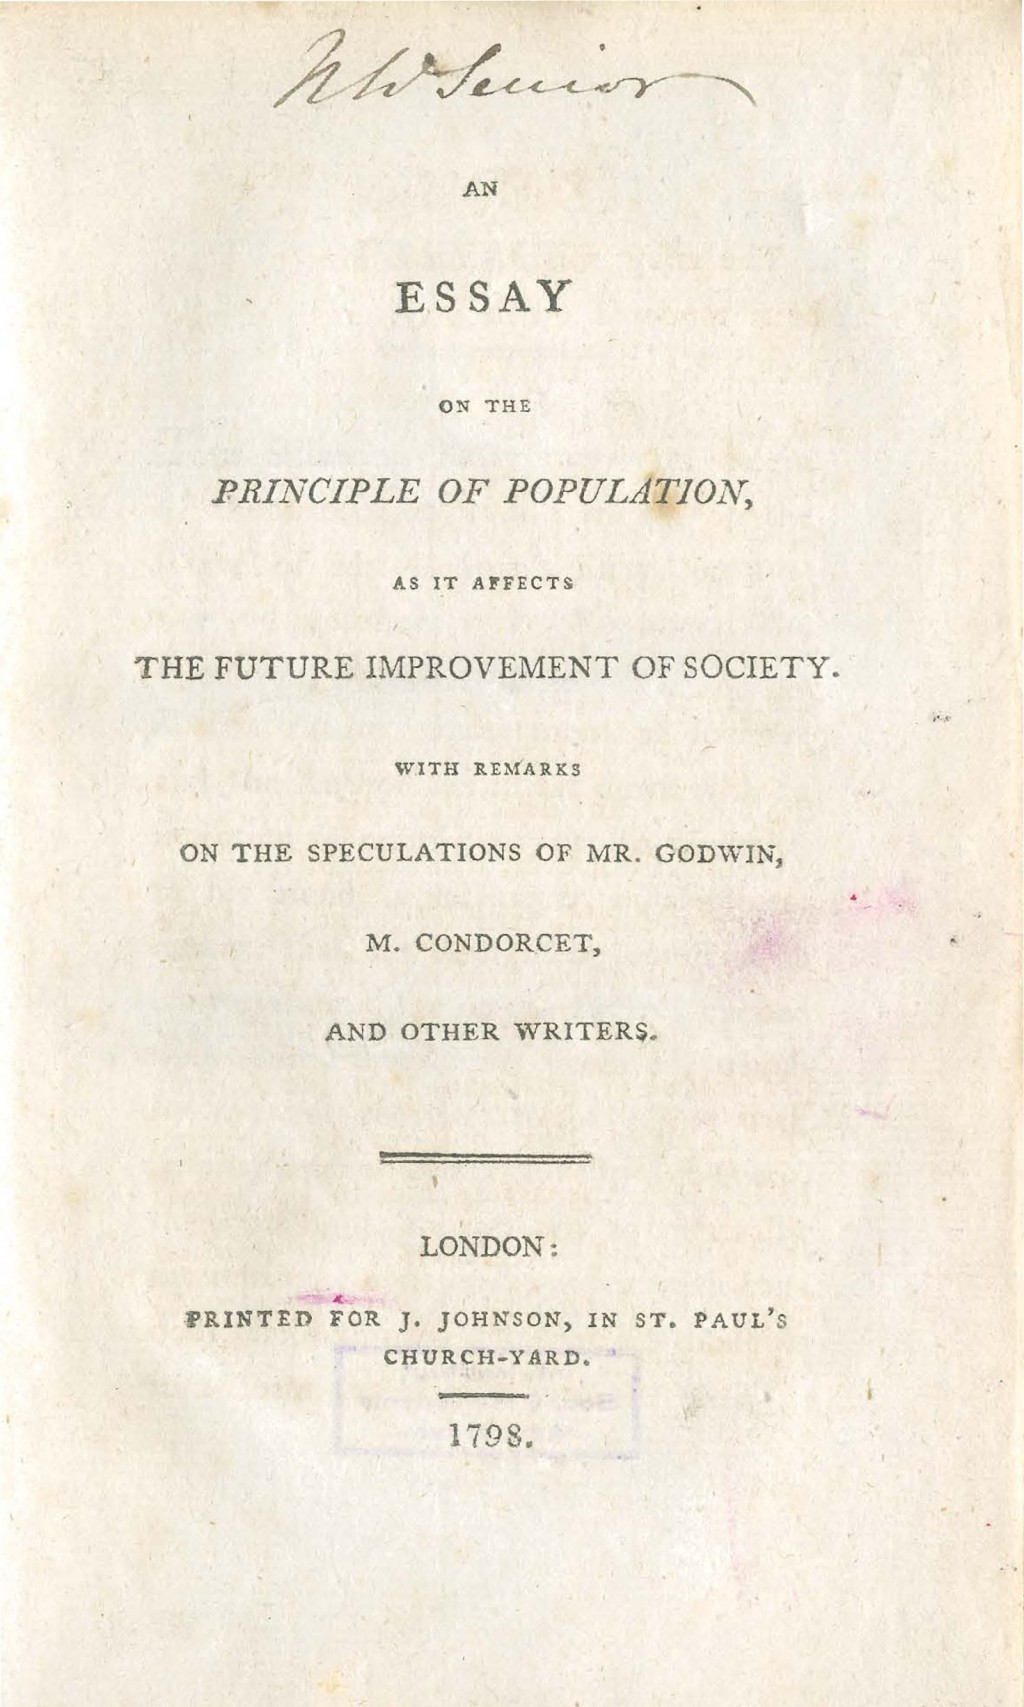 001 An Essay On The Principle Of Population Fascinating By Thomas Malthus Pdf In Concluded Which Following Large